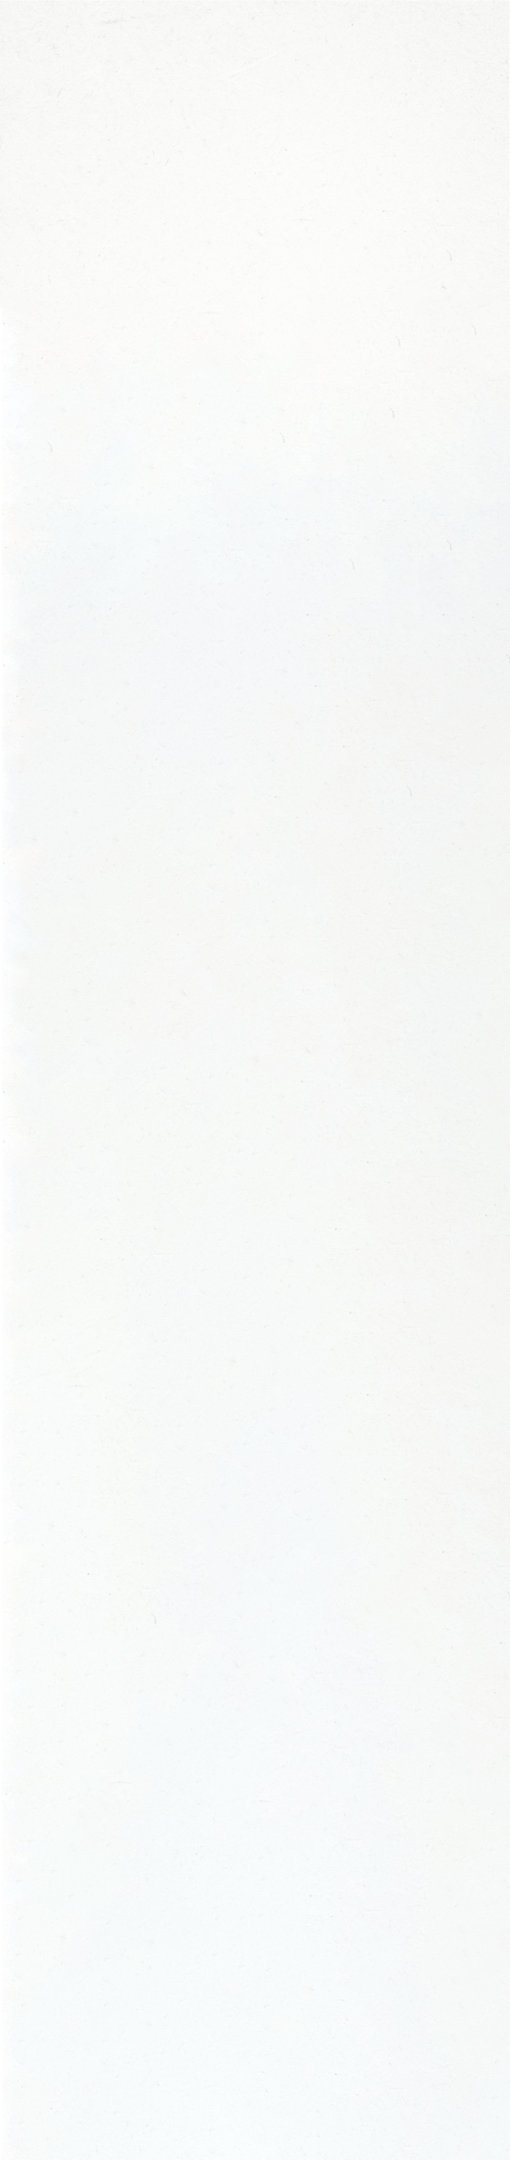 paper-texture_new3.png